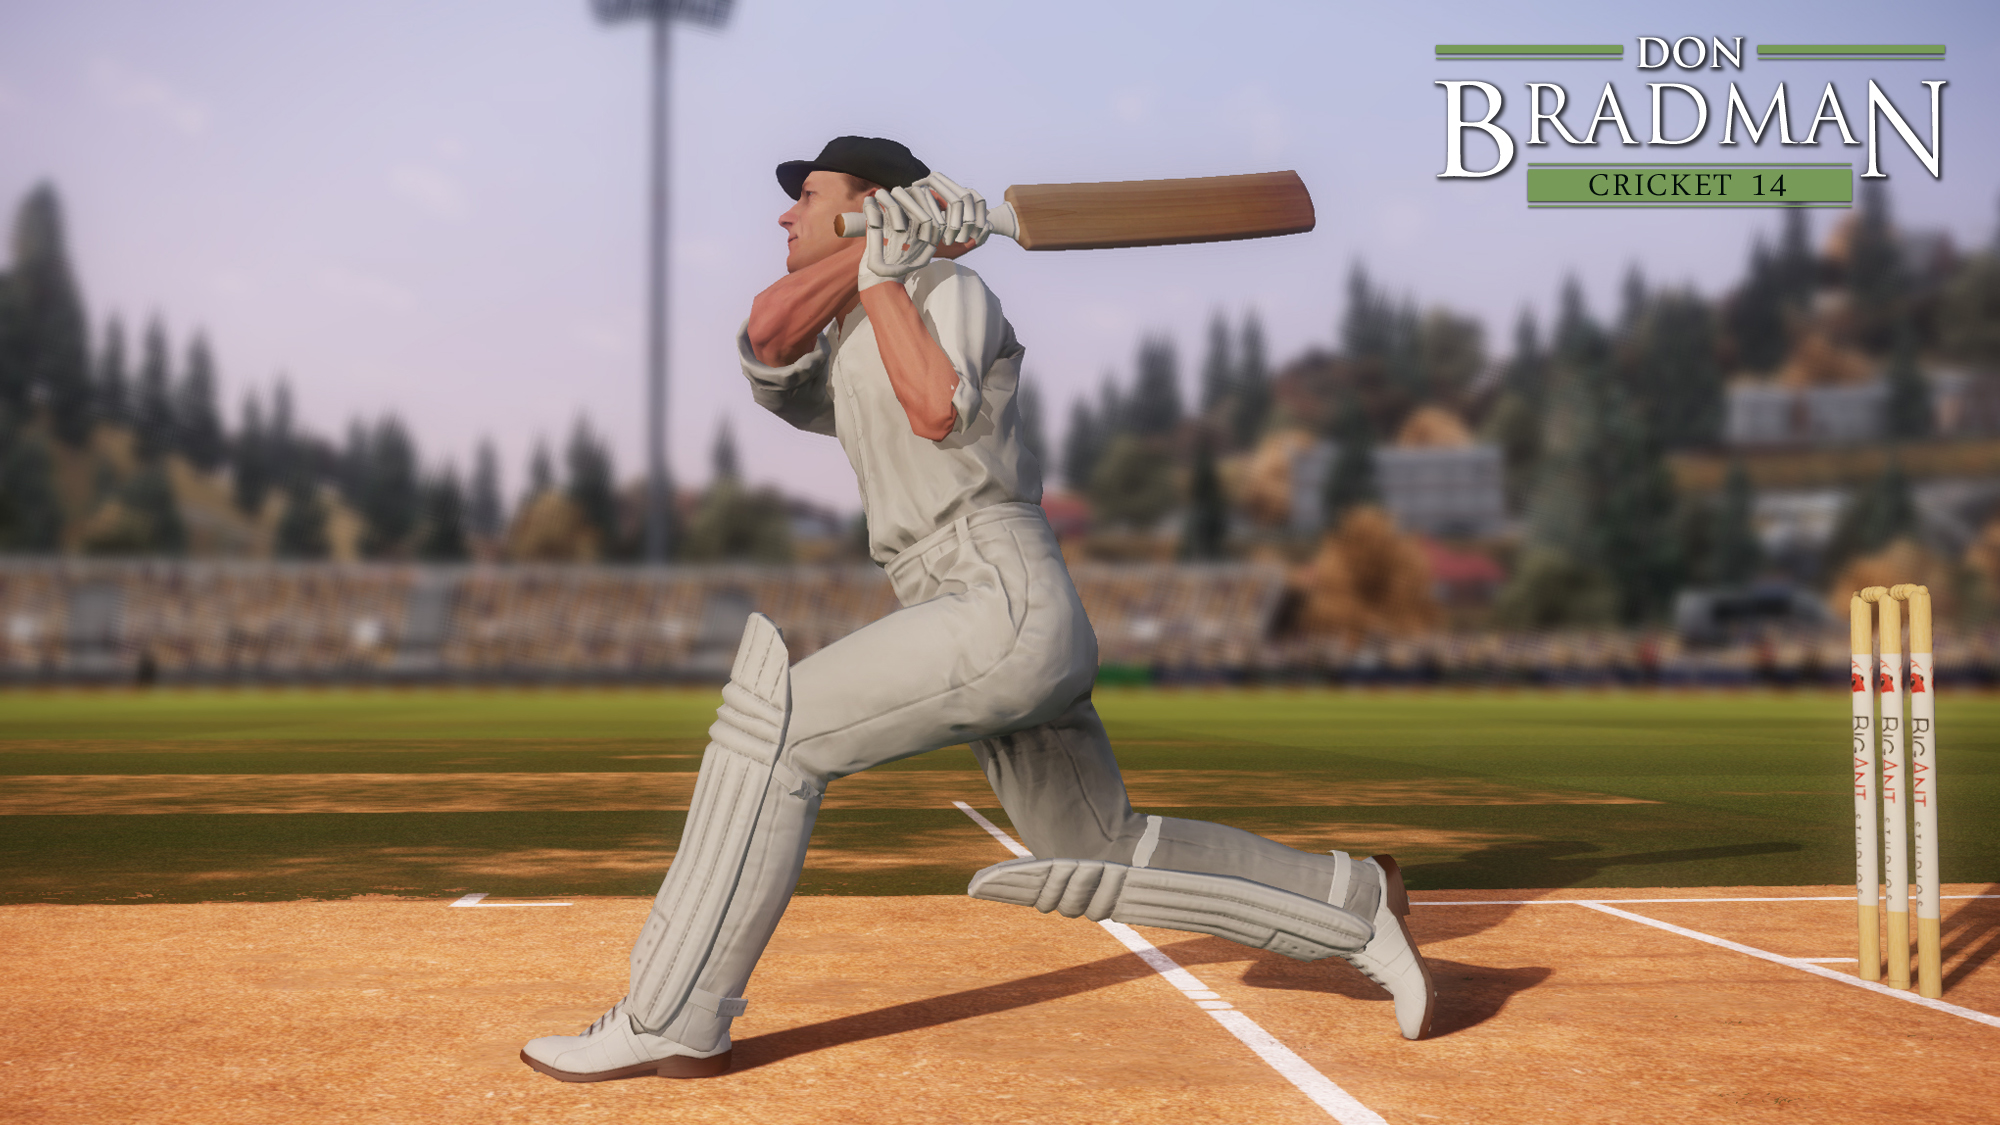 Don-Bradman-Cricket-14-01